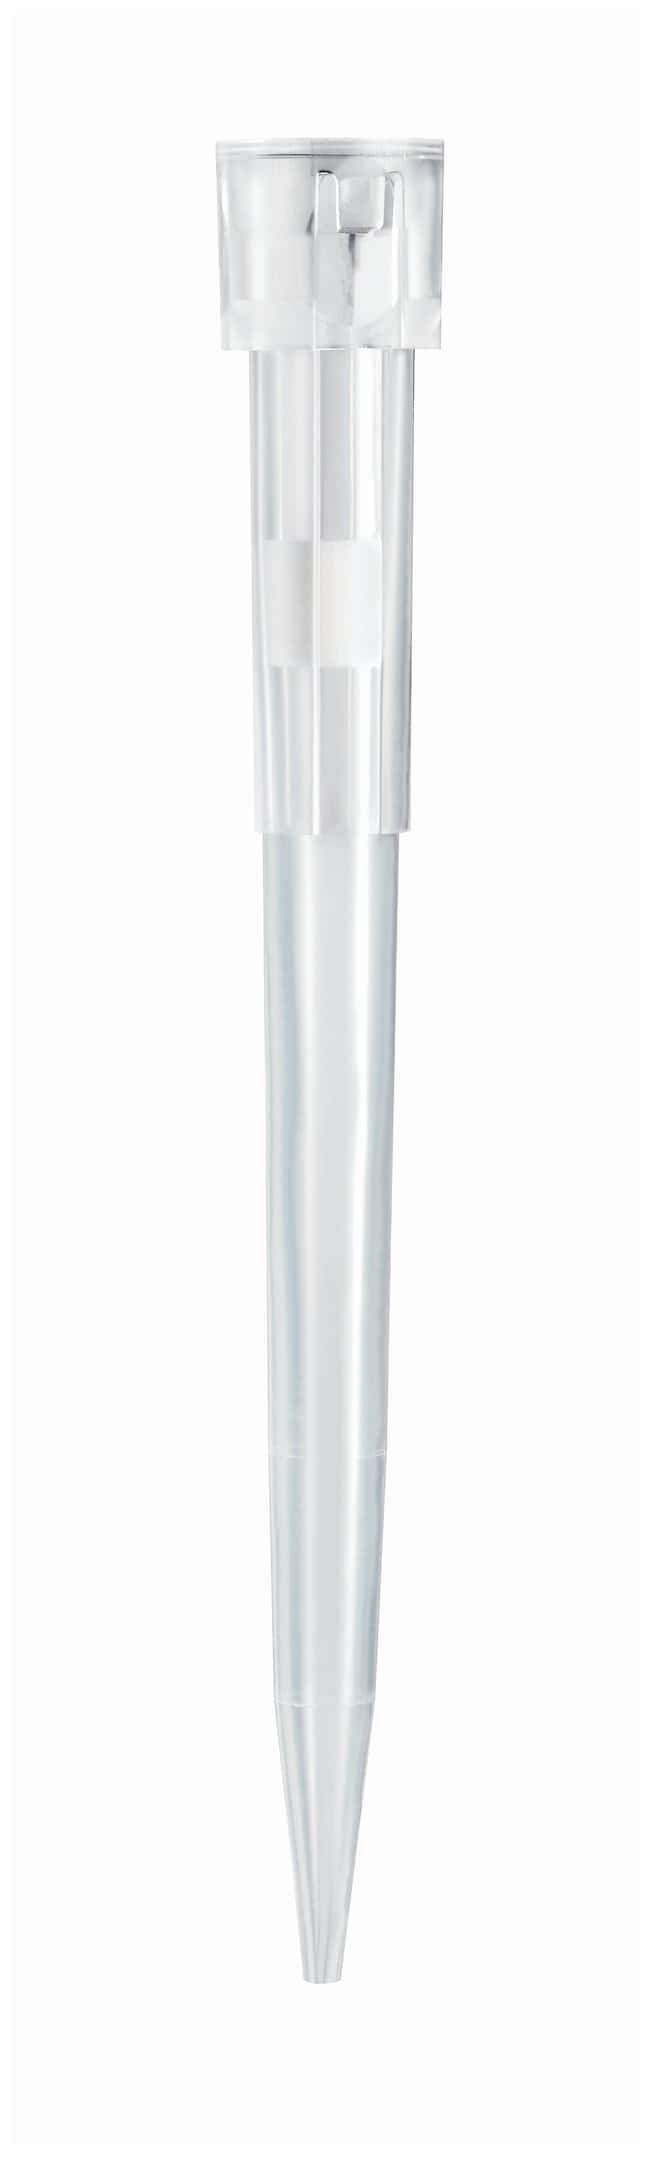 Thermo Scientific ClipTip Pipette Tips ::